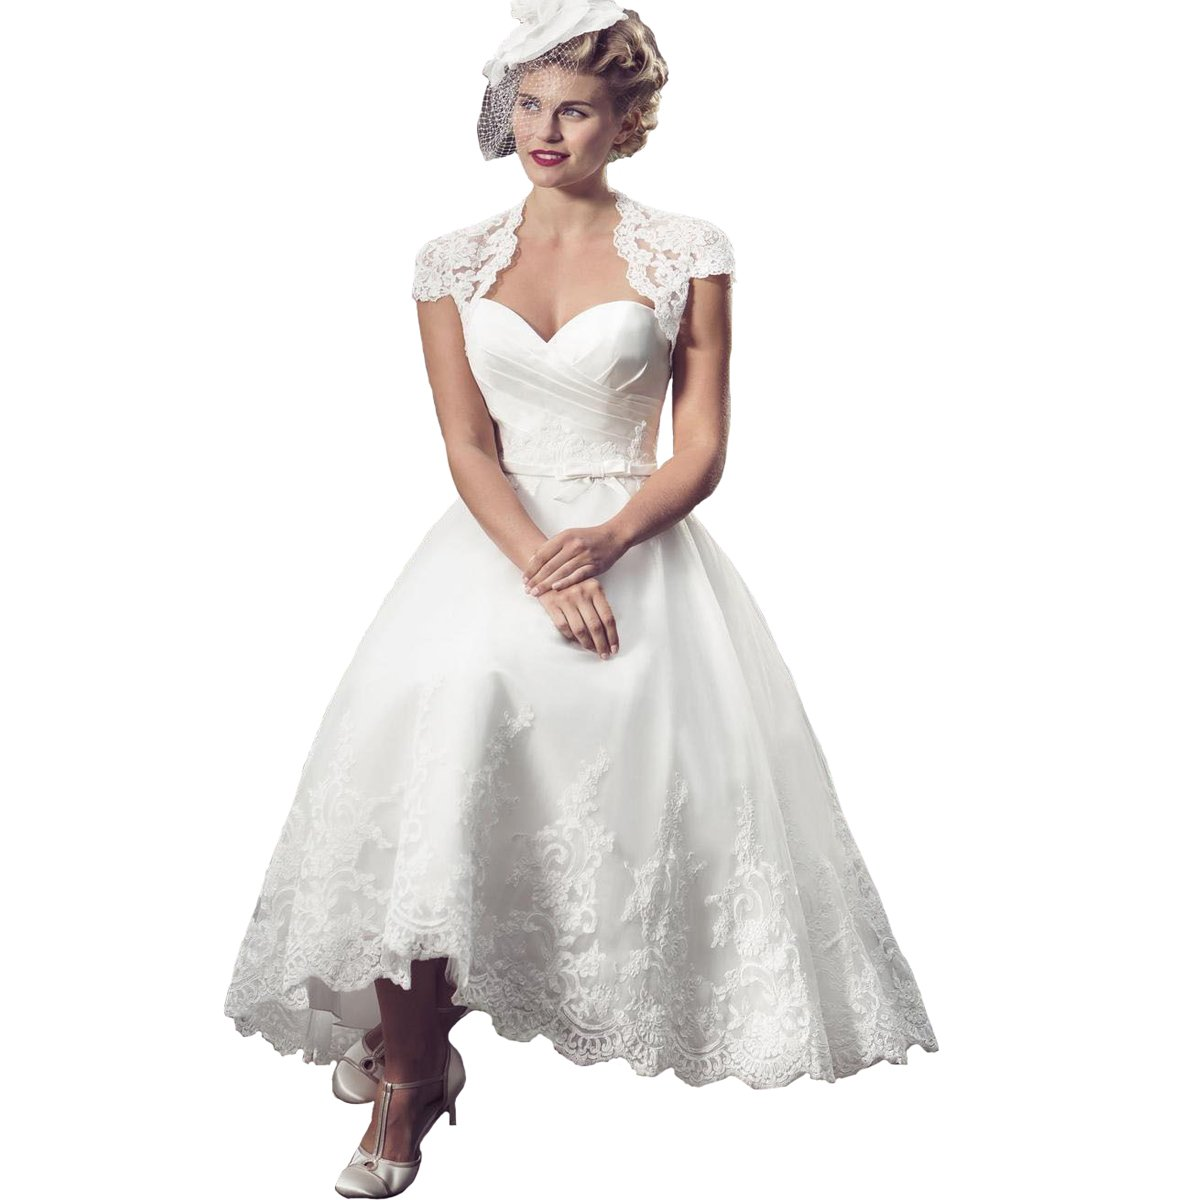 50s Wedding Dress, 1950s Style Wedding Dresses, Rockabilly Weddings Yuxin Lace Vintage Sweetheart Appliques Tea Length Wedding Dress 2018 Short Cap Sleeves A line Bridal Gown $119.00 AT vintagedancer.com